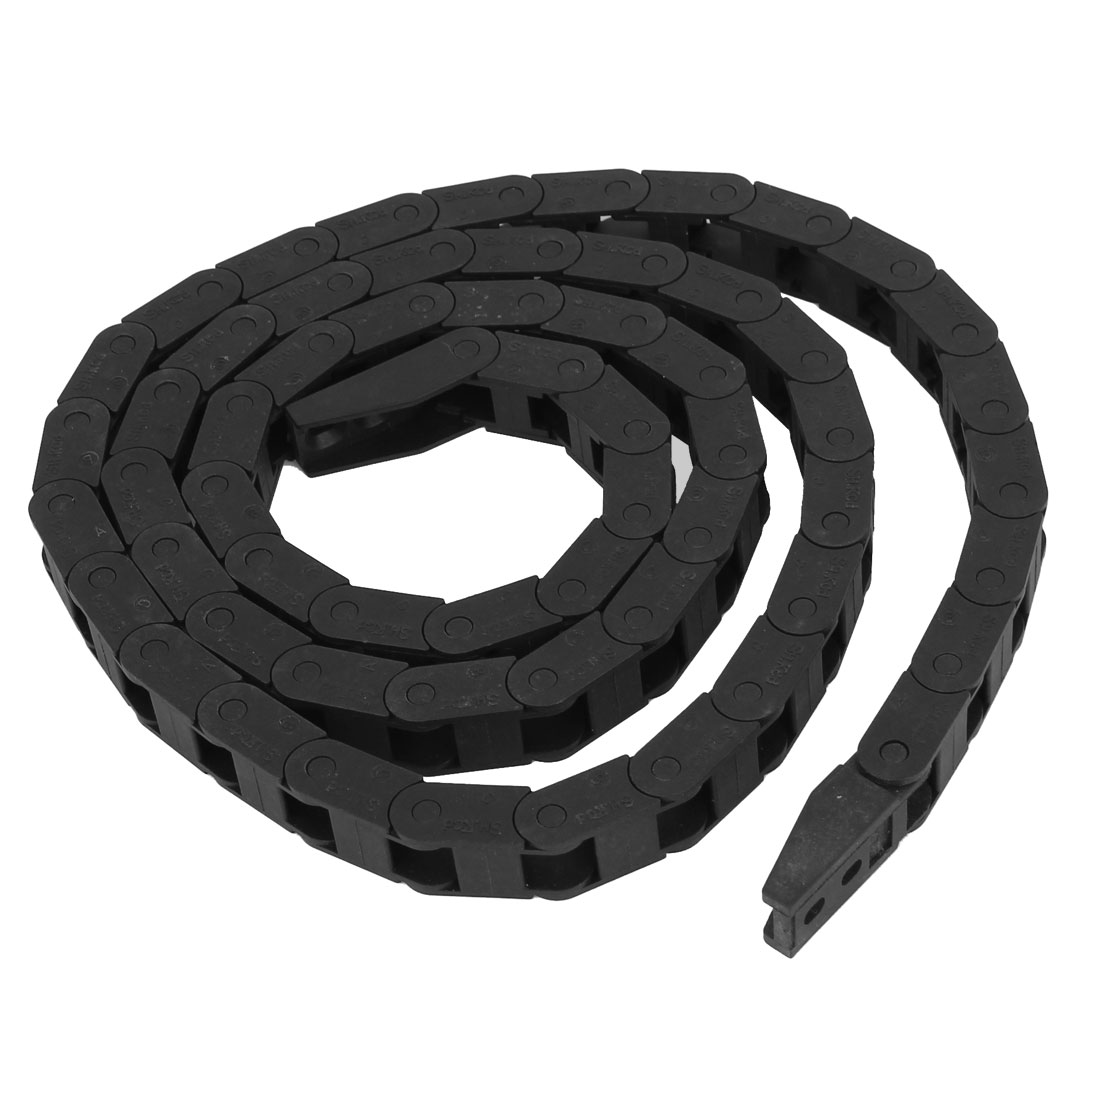 CNC Machine Black Plastic 7.3mmx7mm R4.5cm Cable Drag Chain 3.3Ft Long